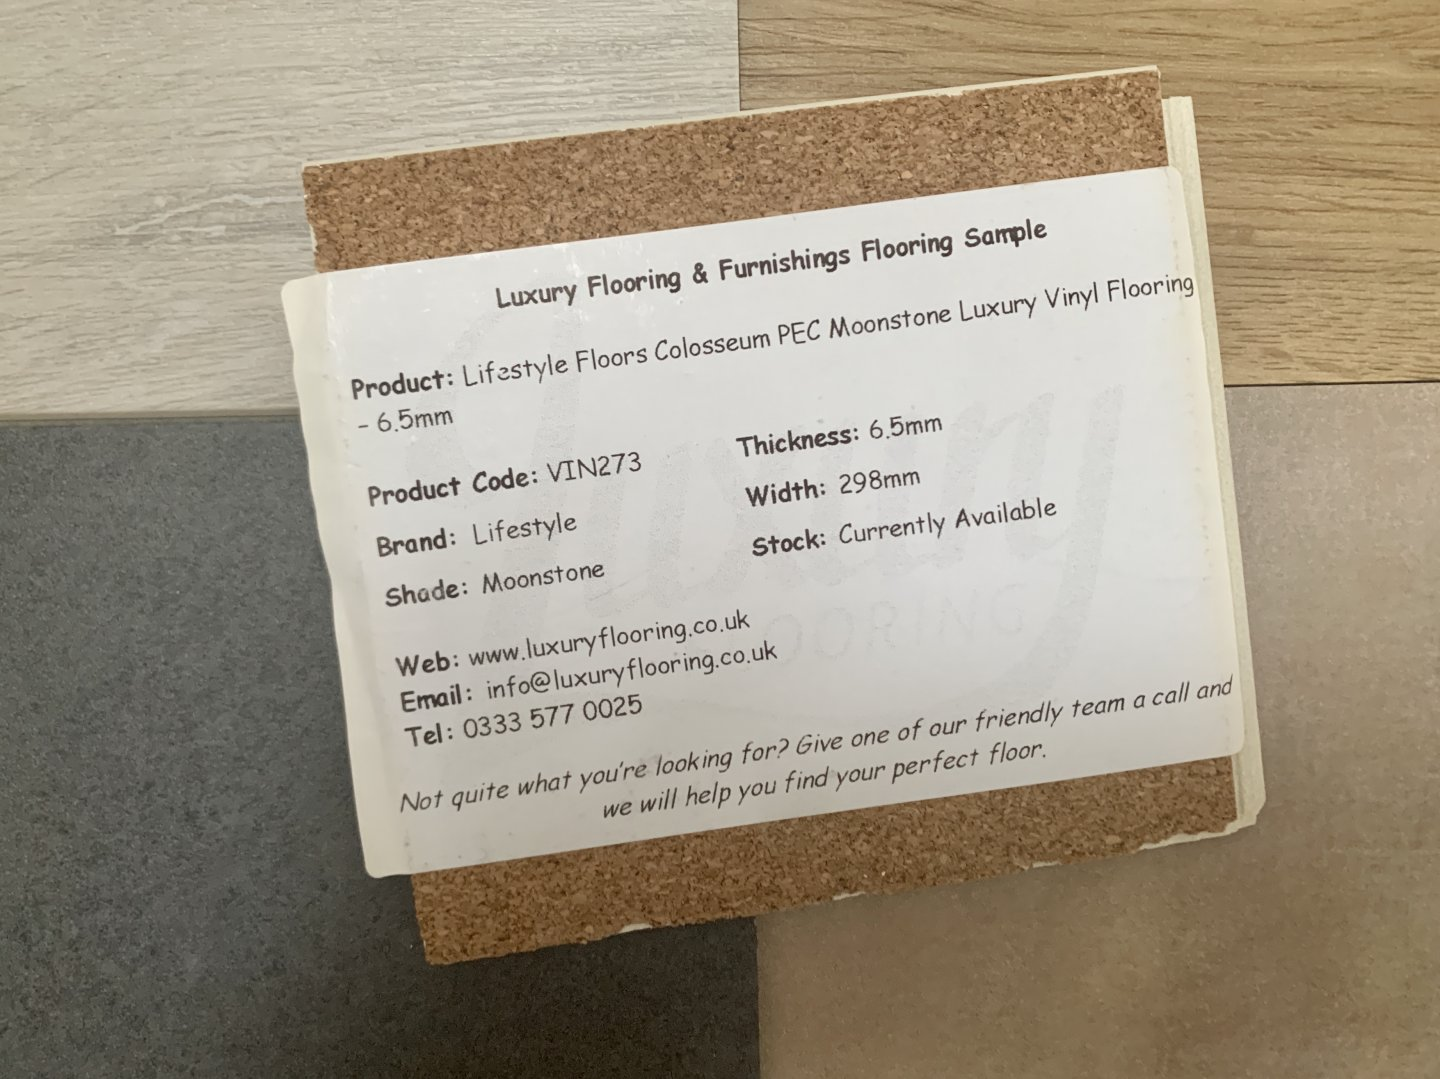 An image showing the information sticker on the back of a sample of LVT from Luxury Flooring. Includes order details, thickness, width, shade and brand information.